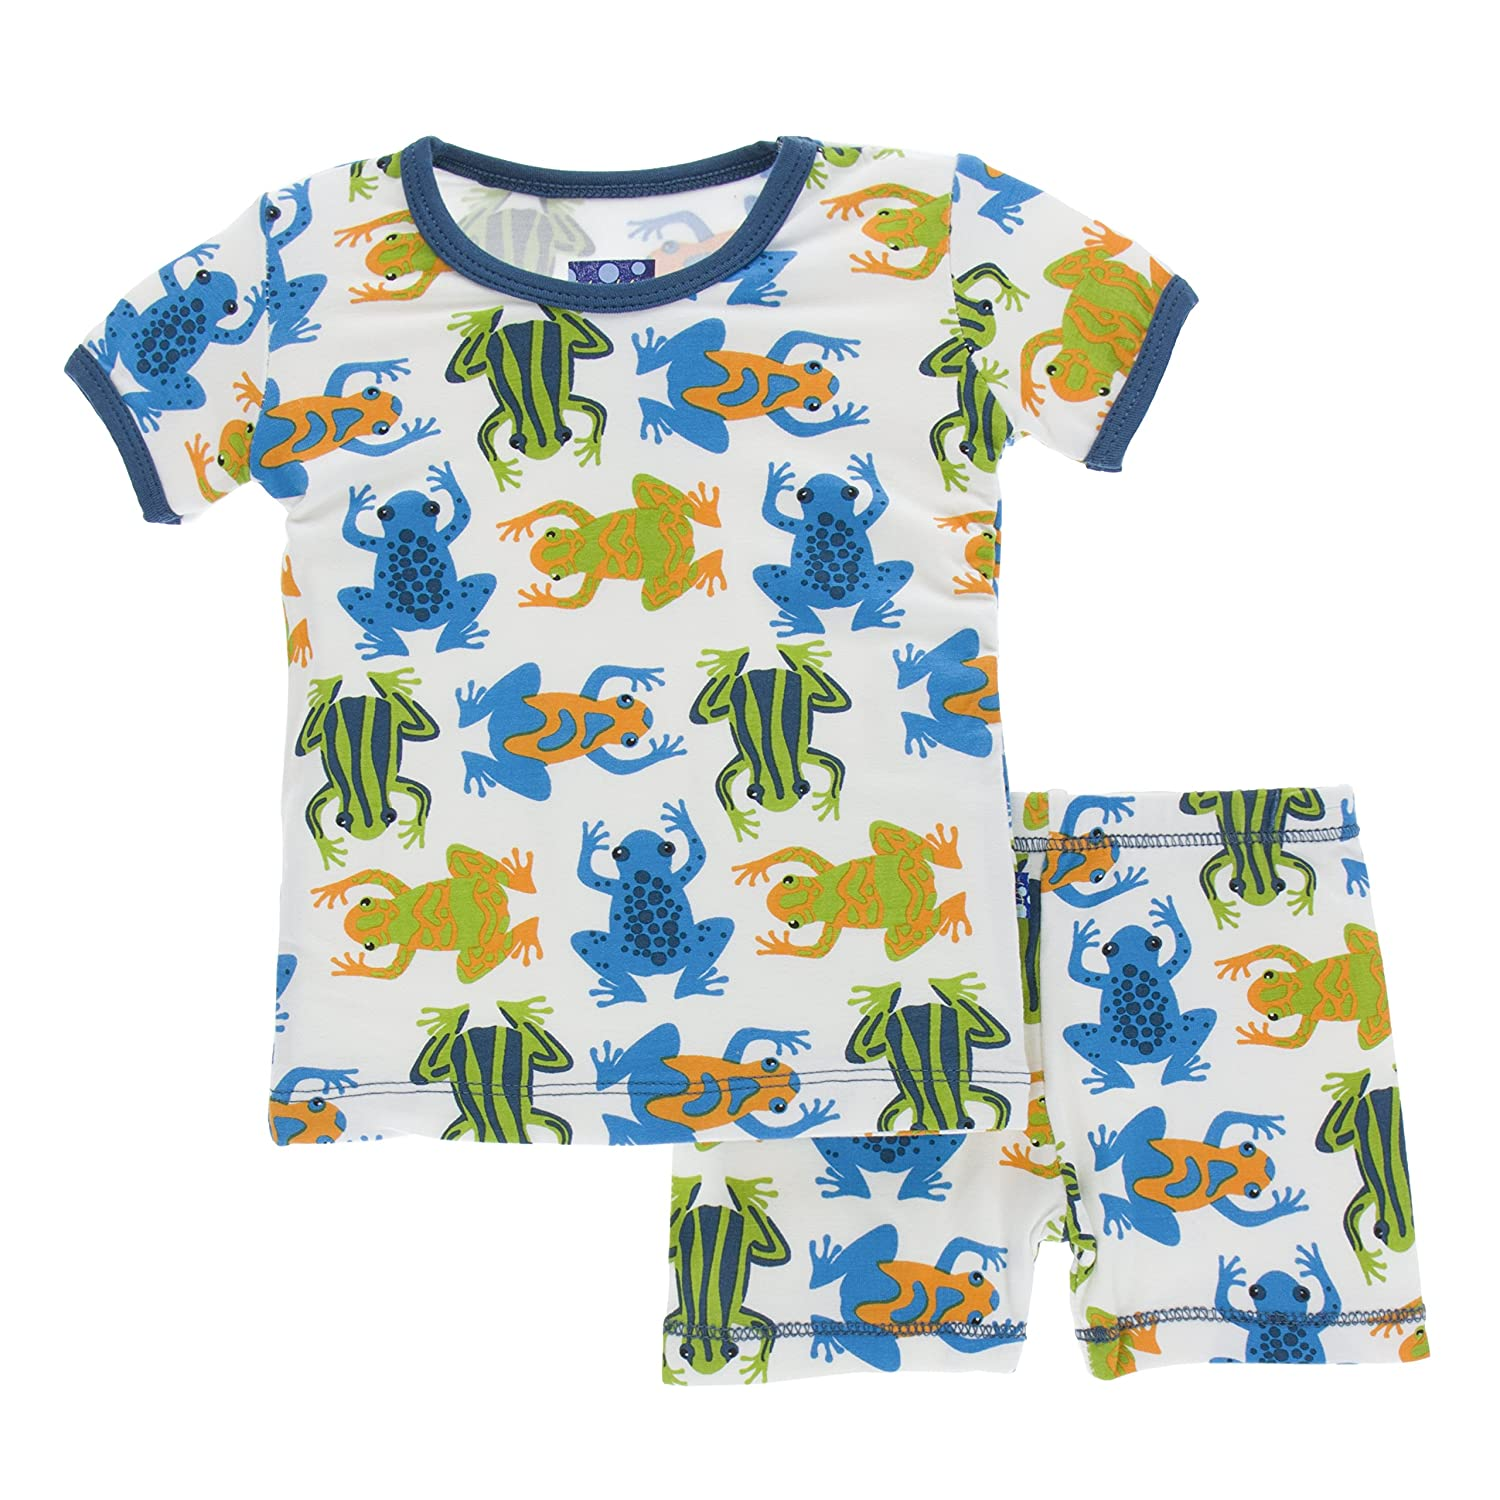 上品なスタイル Kickee Pants SLEEPWEAR Pants ベビーボーイズ SLEEPWEAR ボーイズ 18 - Amazon 24 Months Amazon Frogs B07BR6QZYW, YAMAKEI別館:61361b33 --- a0267596.xsph.ru